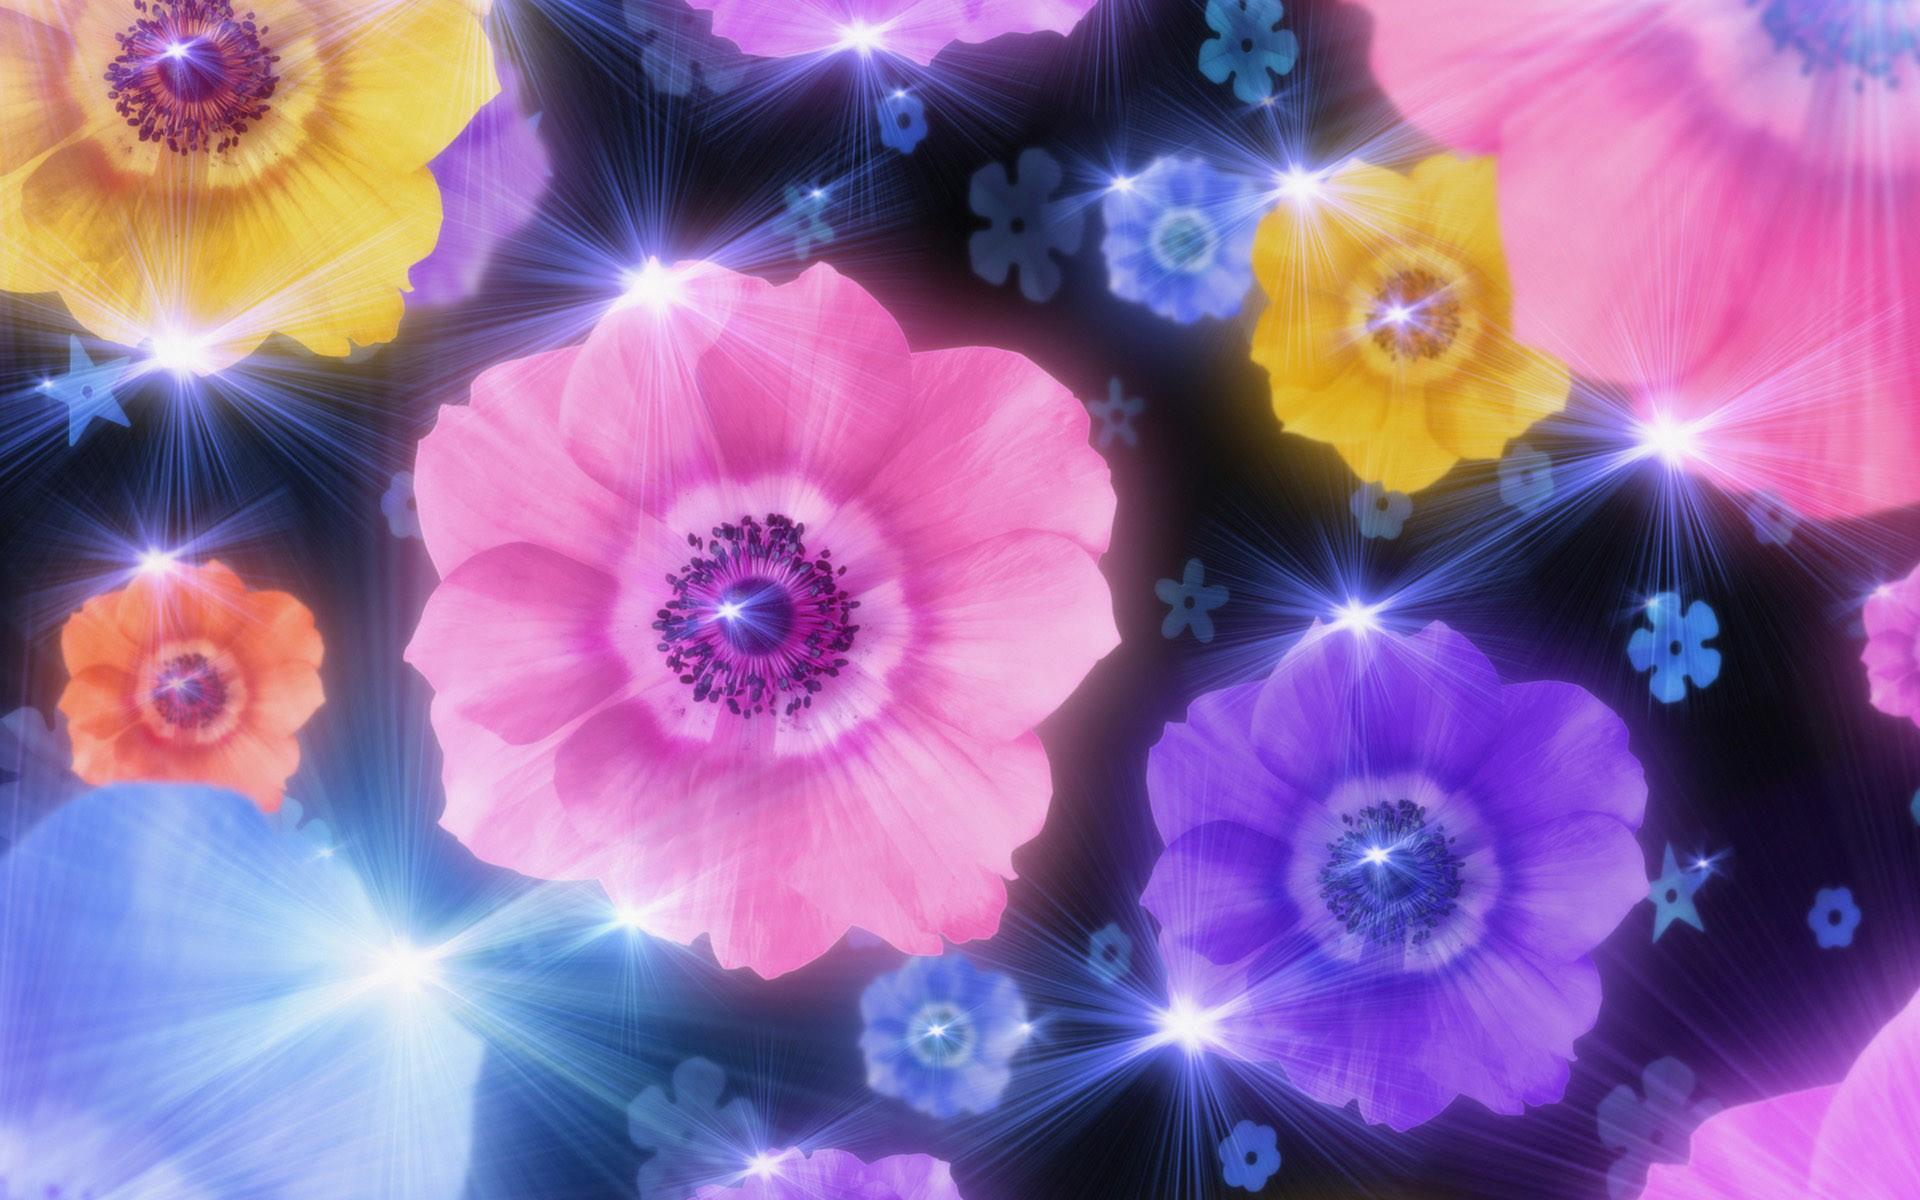 1920x1200 animated, wallpaper, mobile, flower, background, image, wallpapers